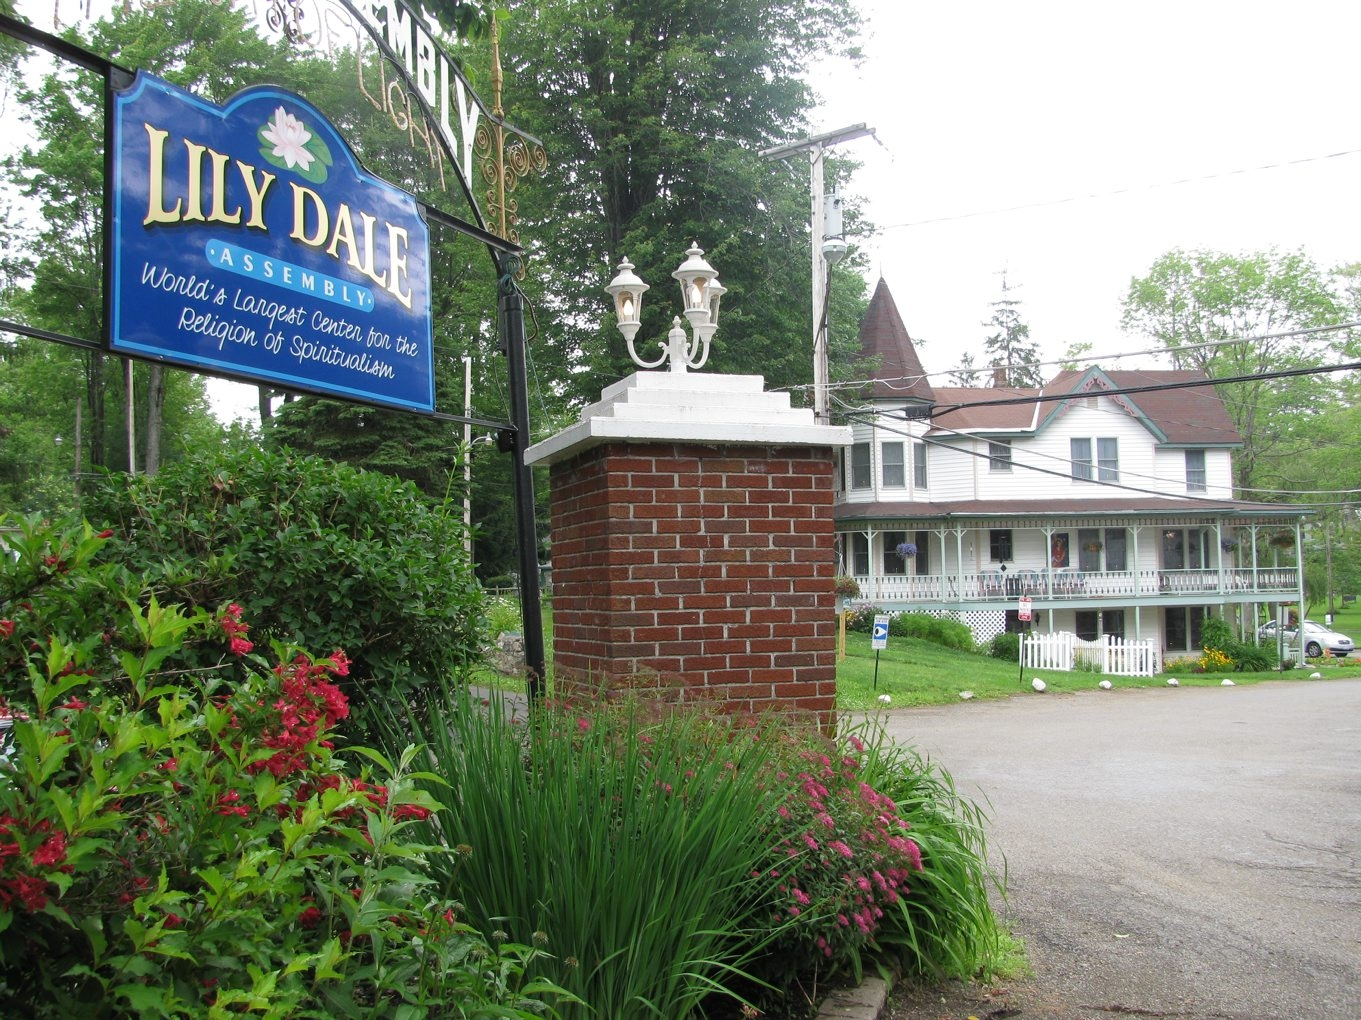 Lily Dale in Cassadaga, N.Y., not to be confused with the community of the same name with similar roots in Florida.